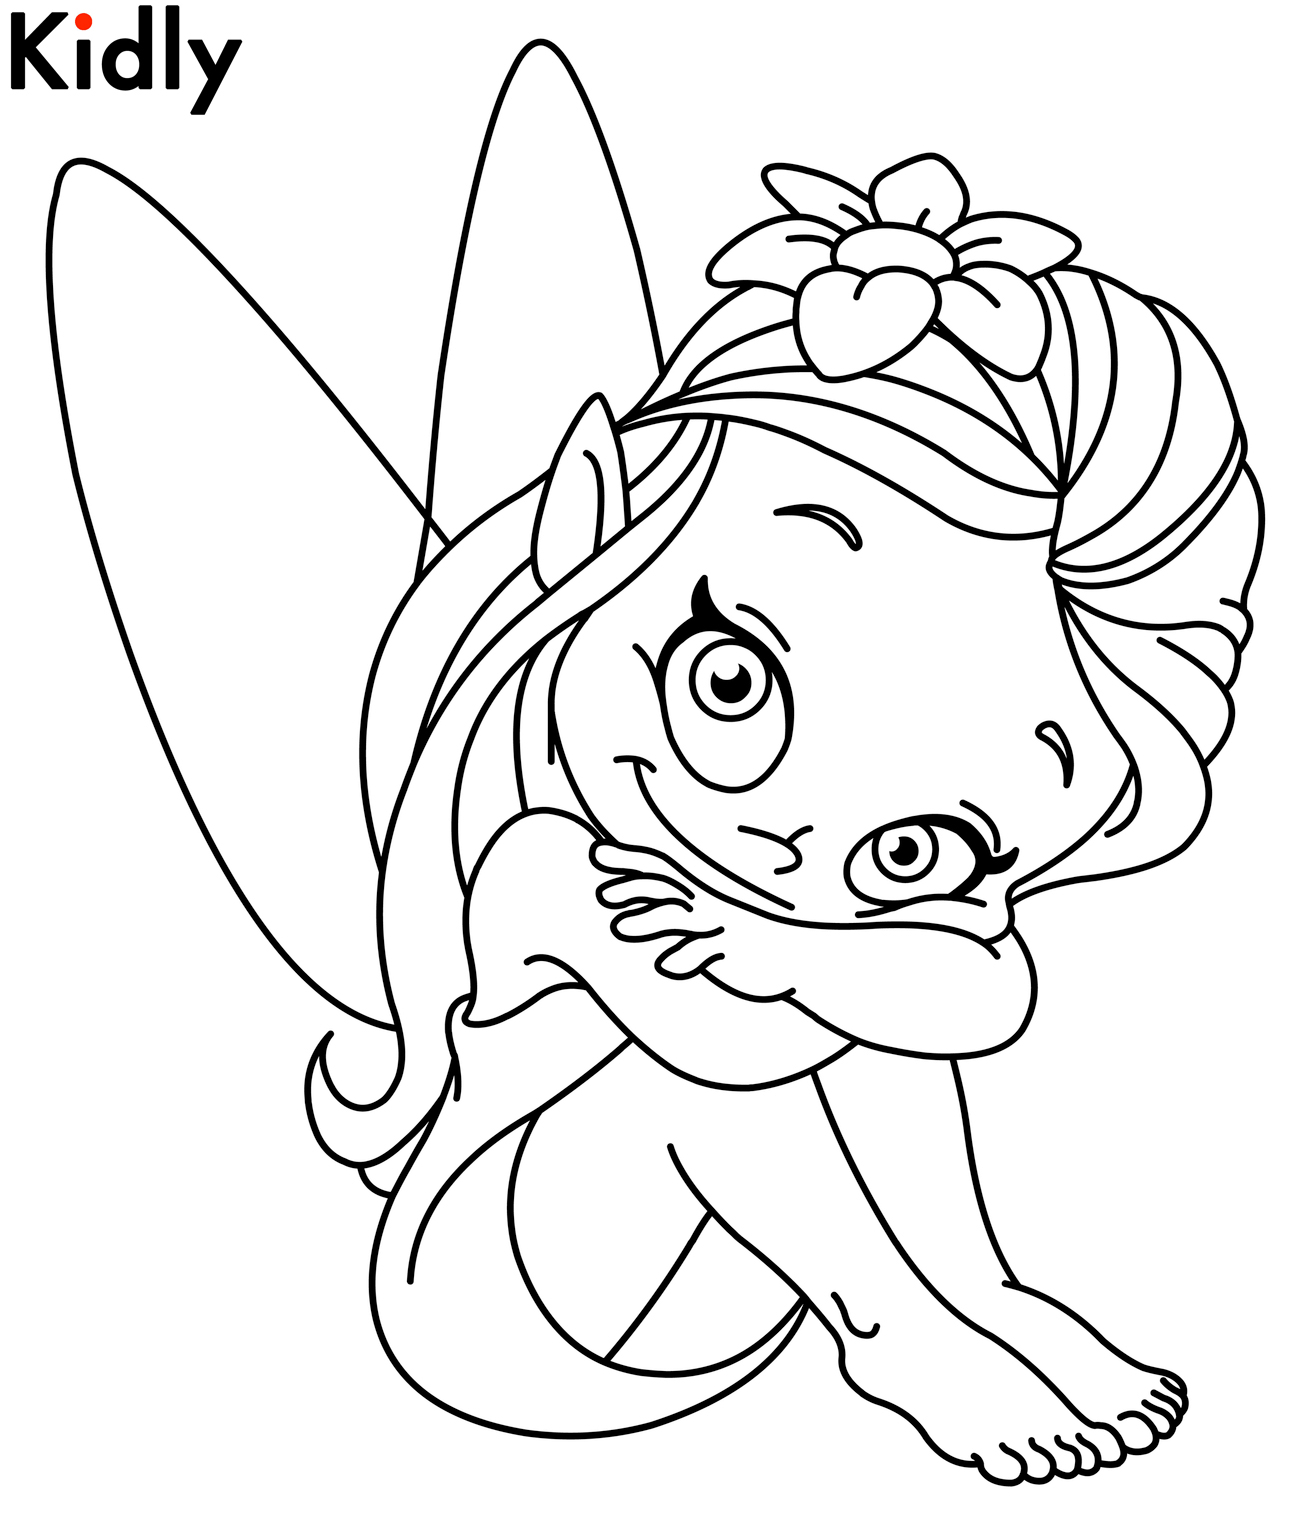 detailed beautiful fairy coloring pages free amy brown fairy coloring pages fairie coloring detailed pages fairy beautiful coloring